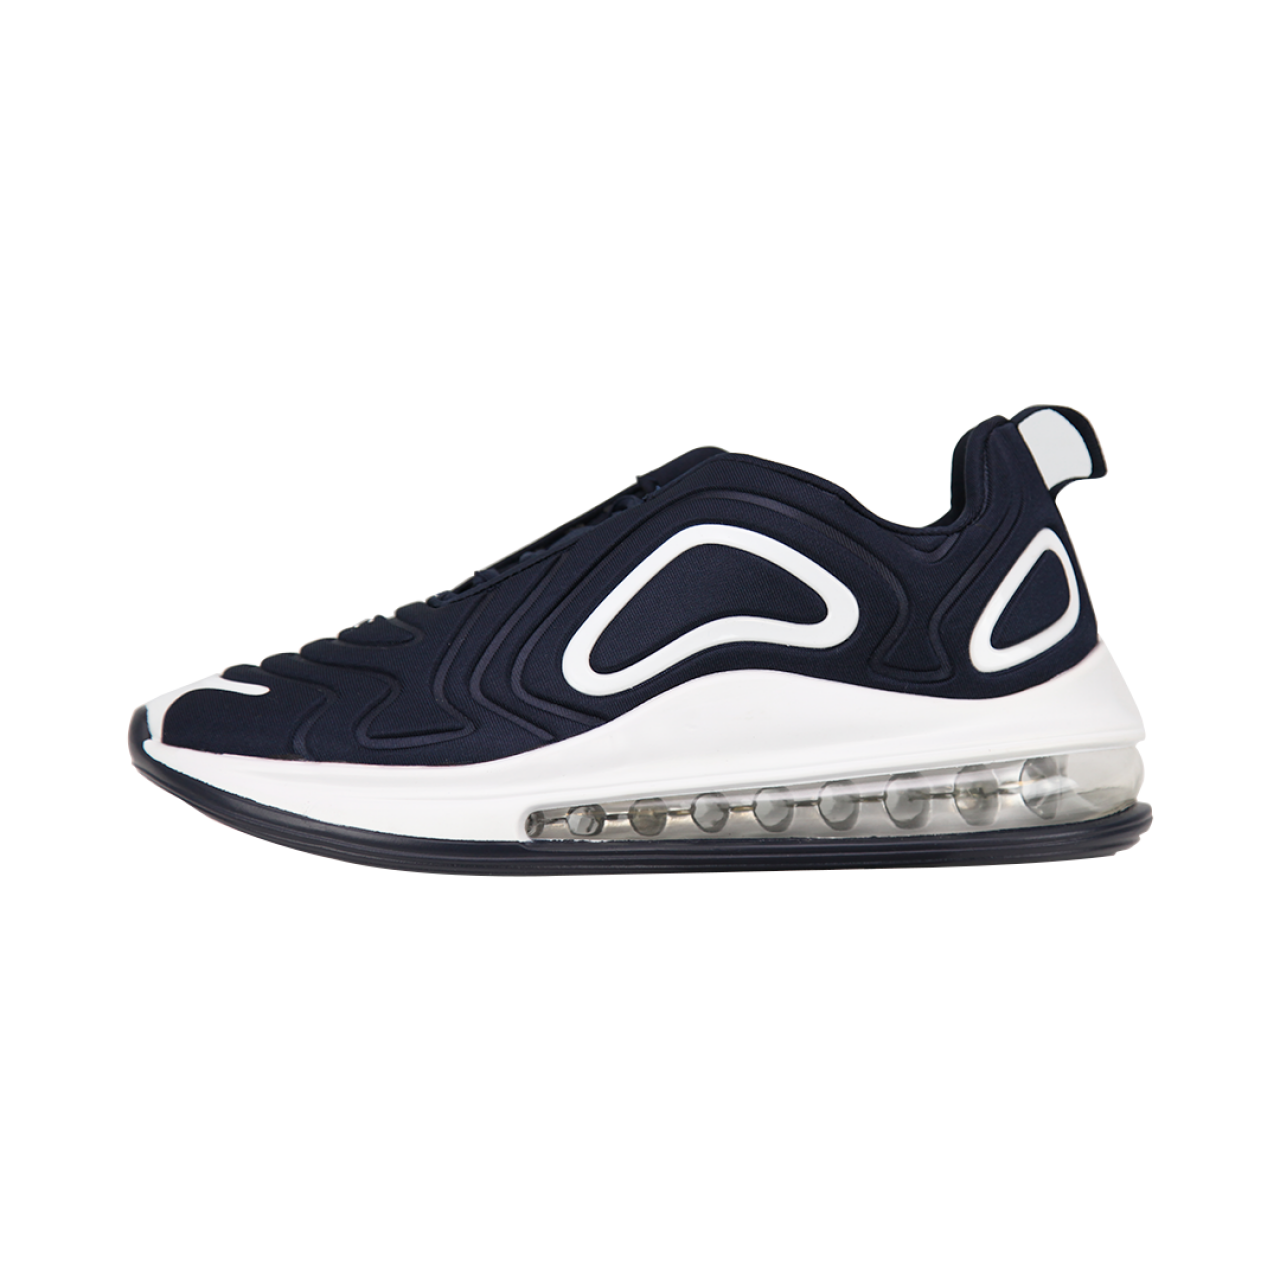 Zeekas Men's Air Max Textured Lace-Up Navy Blue Sneakers / Sports Shoes